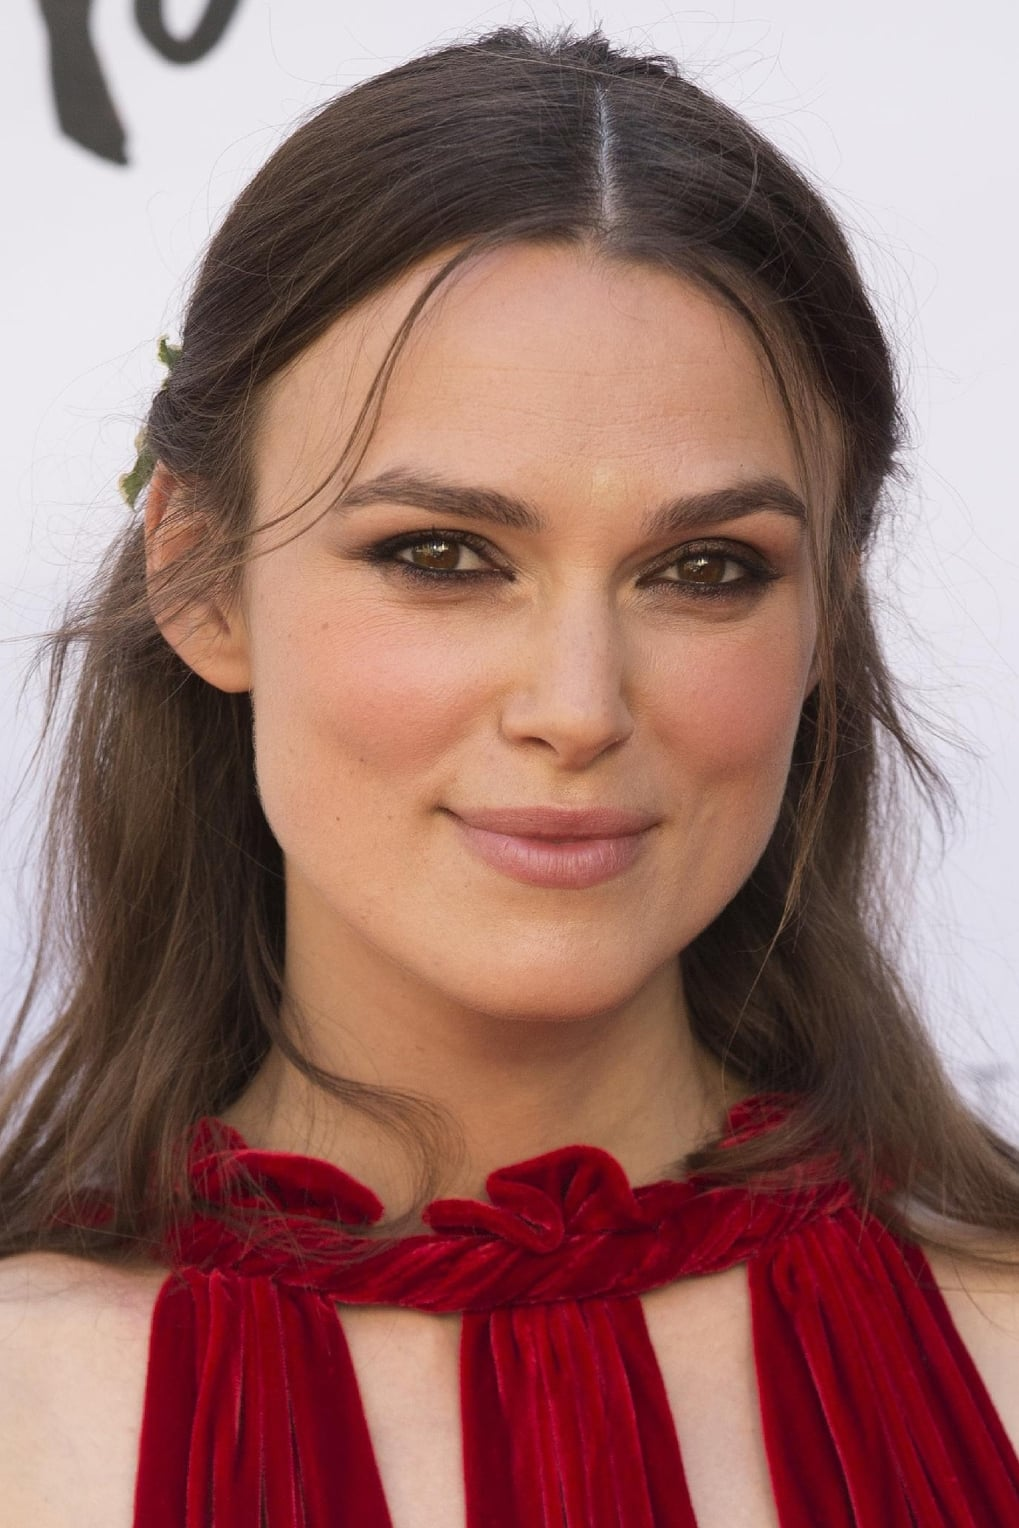 Keira Knightley - Profile Images — The Movie Database (TMDb)